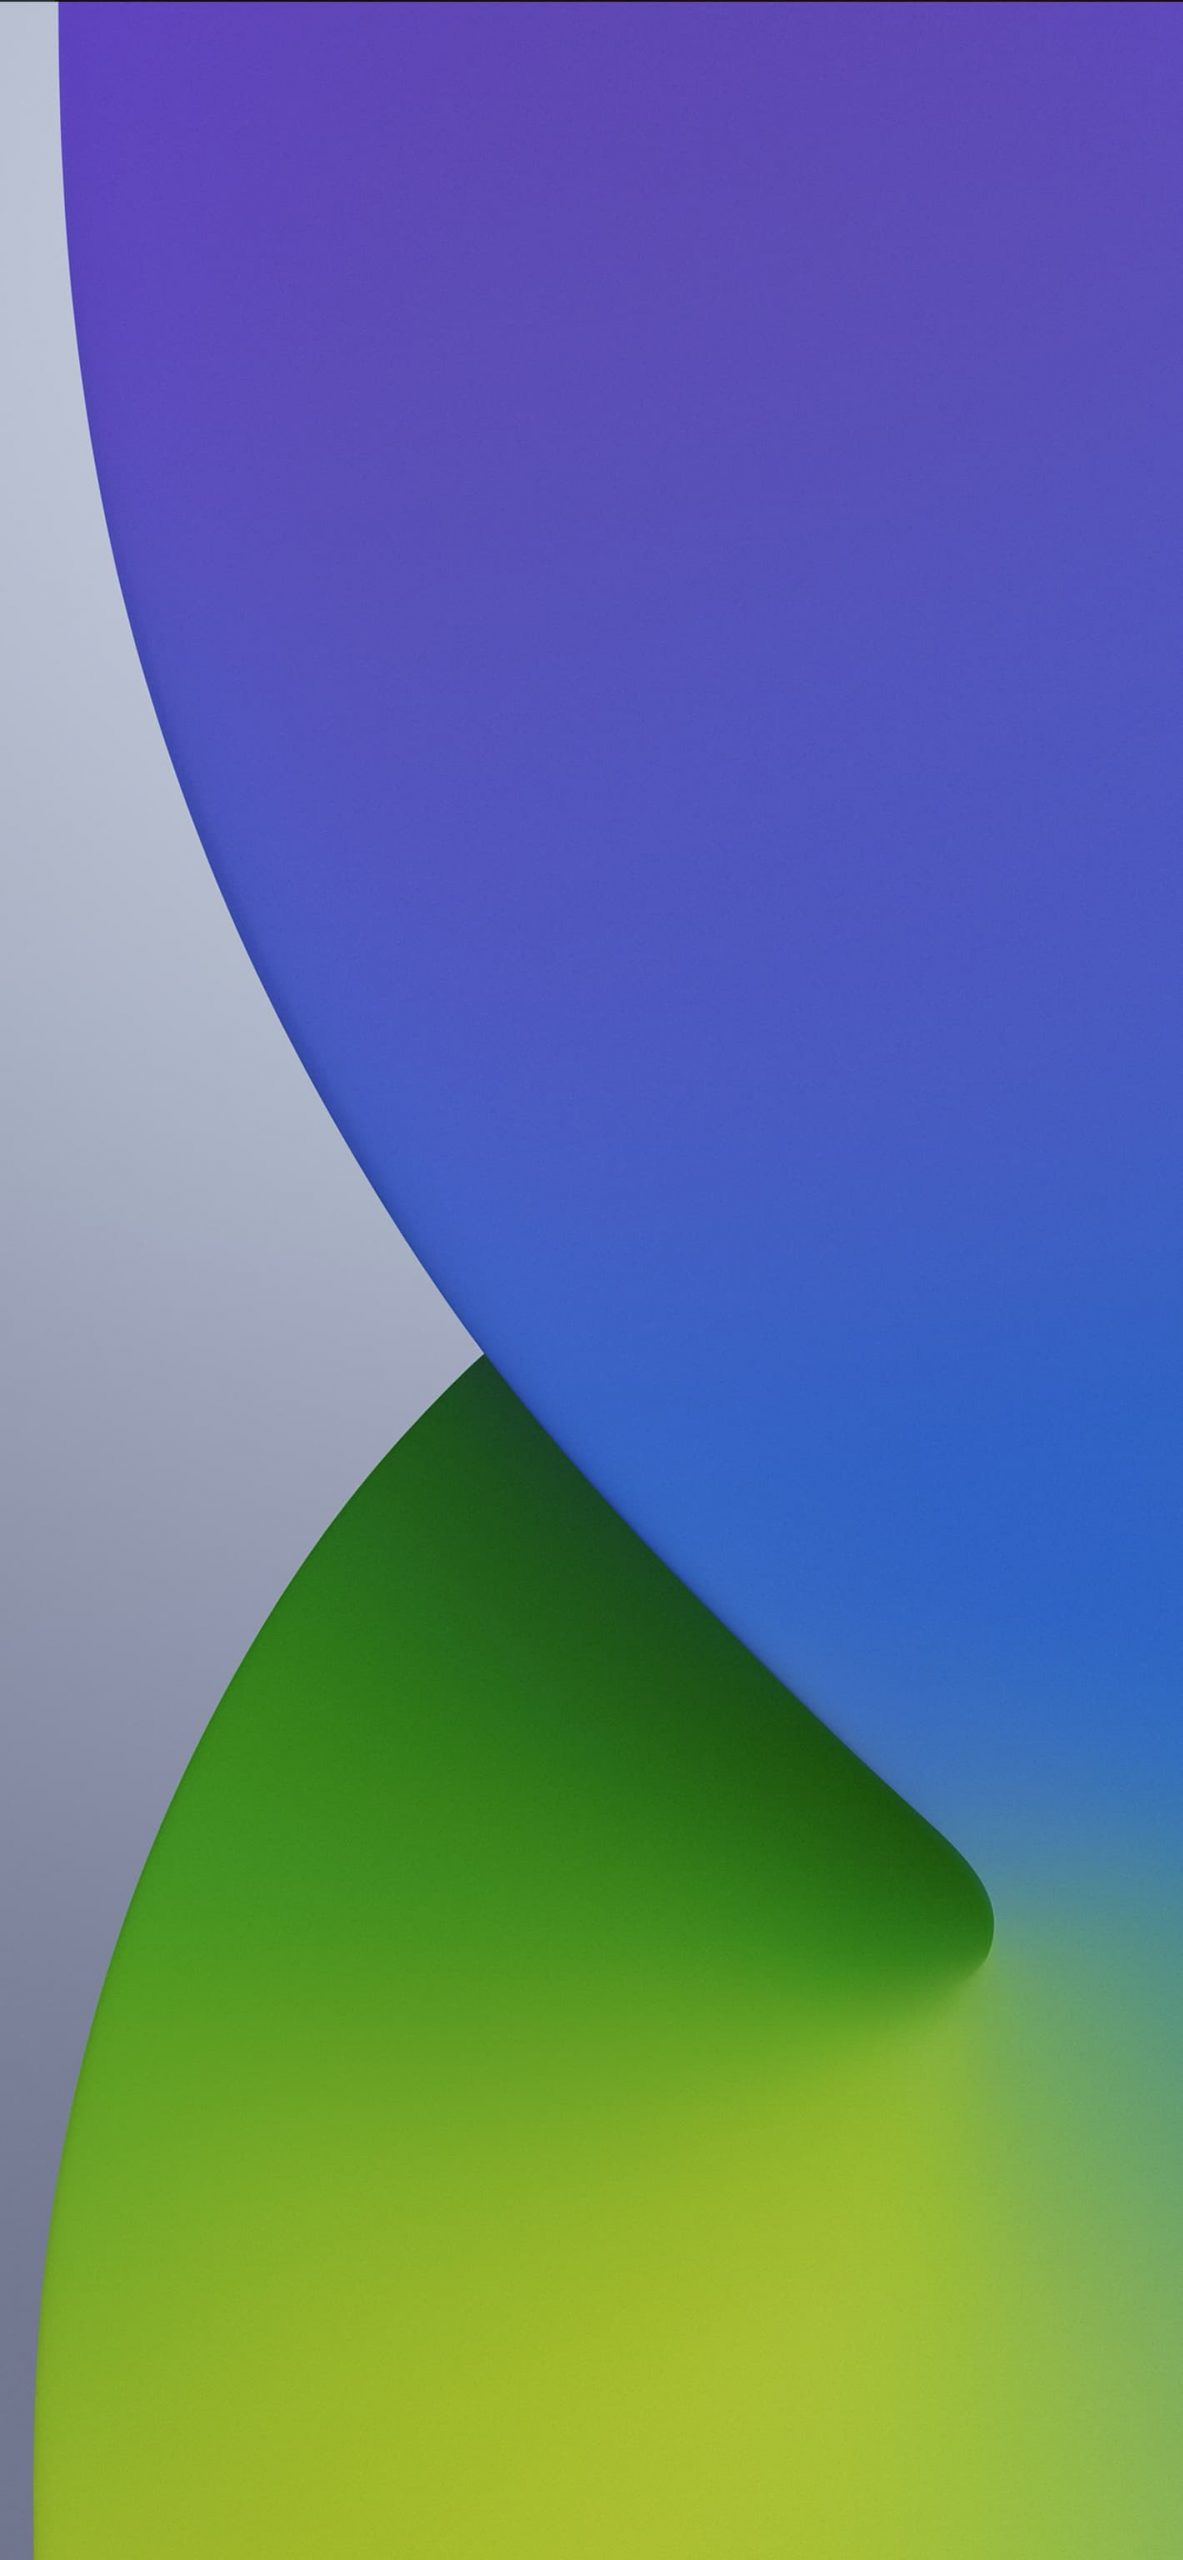 ios 14 wallpapers3 scaled iOS 14 Wallpapers